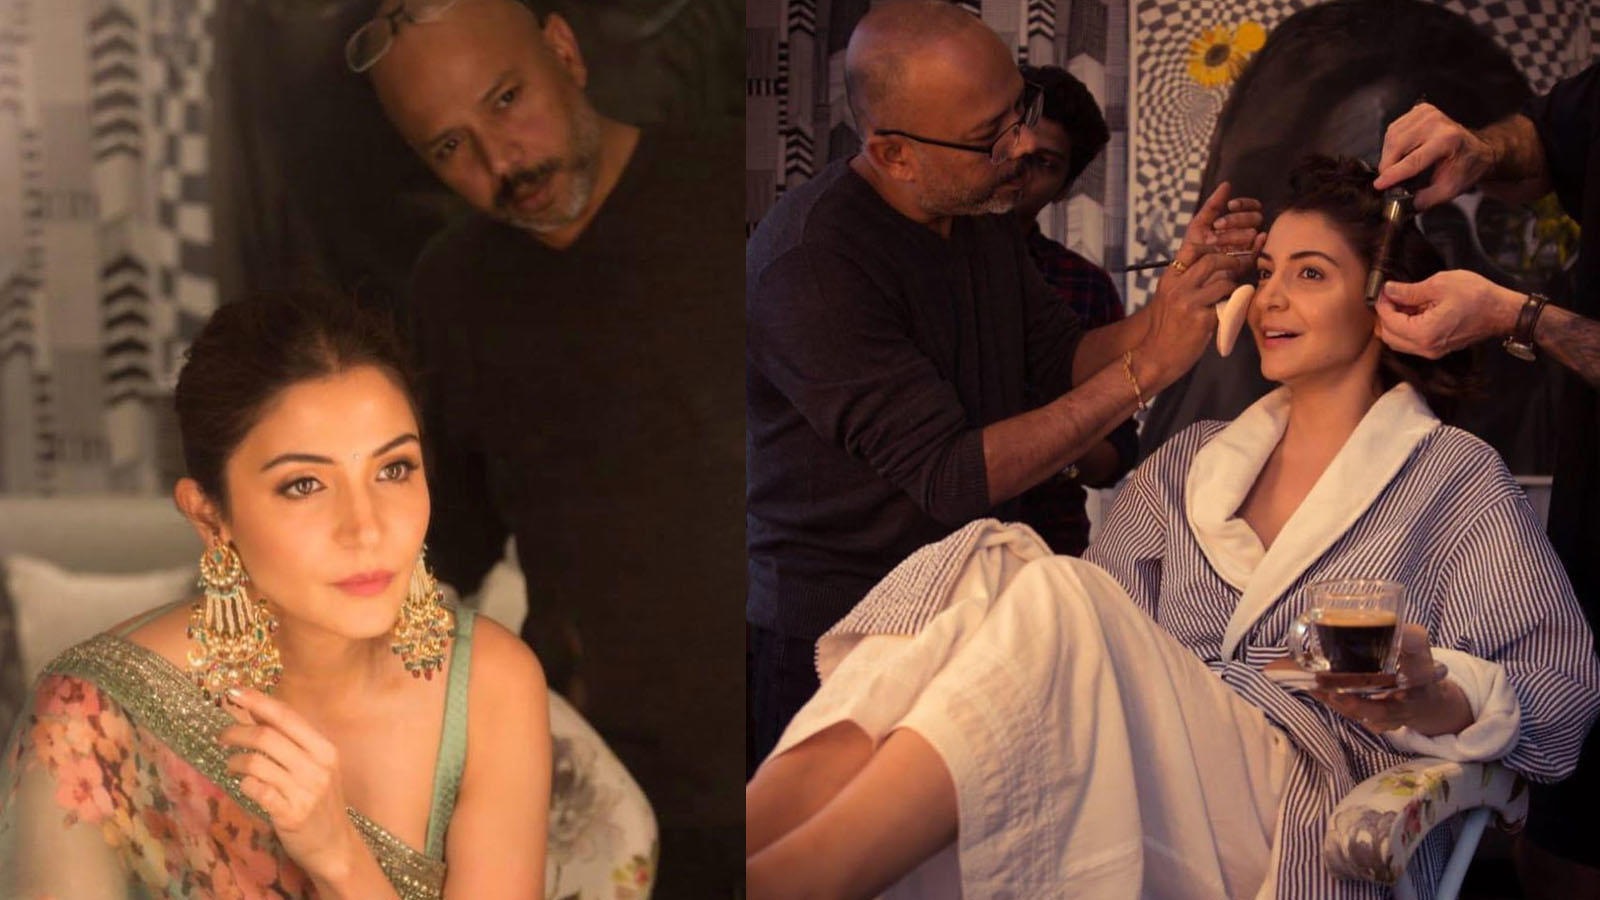 anushka-sharma-pens-down-a-heartfelt-note-on-the-demise-of-her-make-up-artist-subhash-vangal